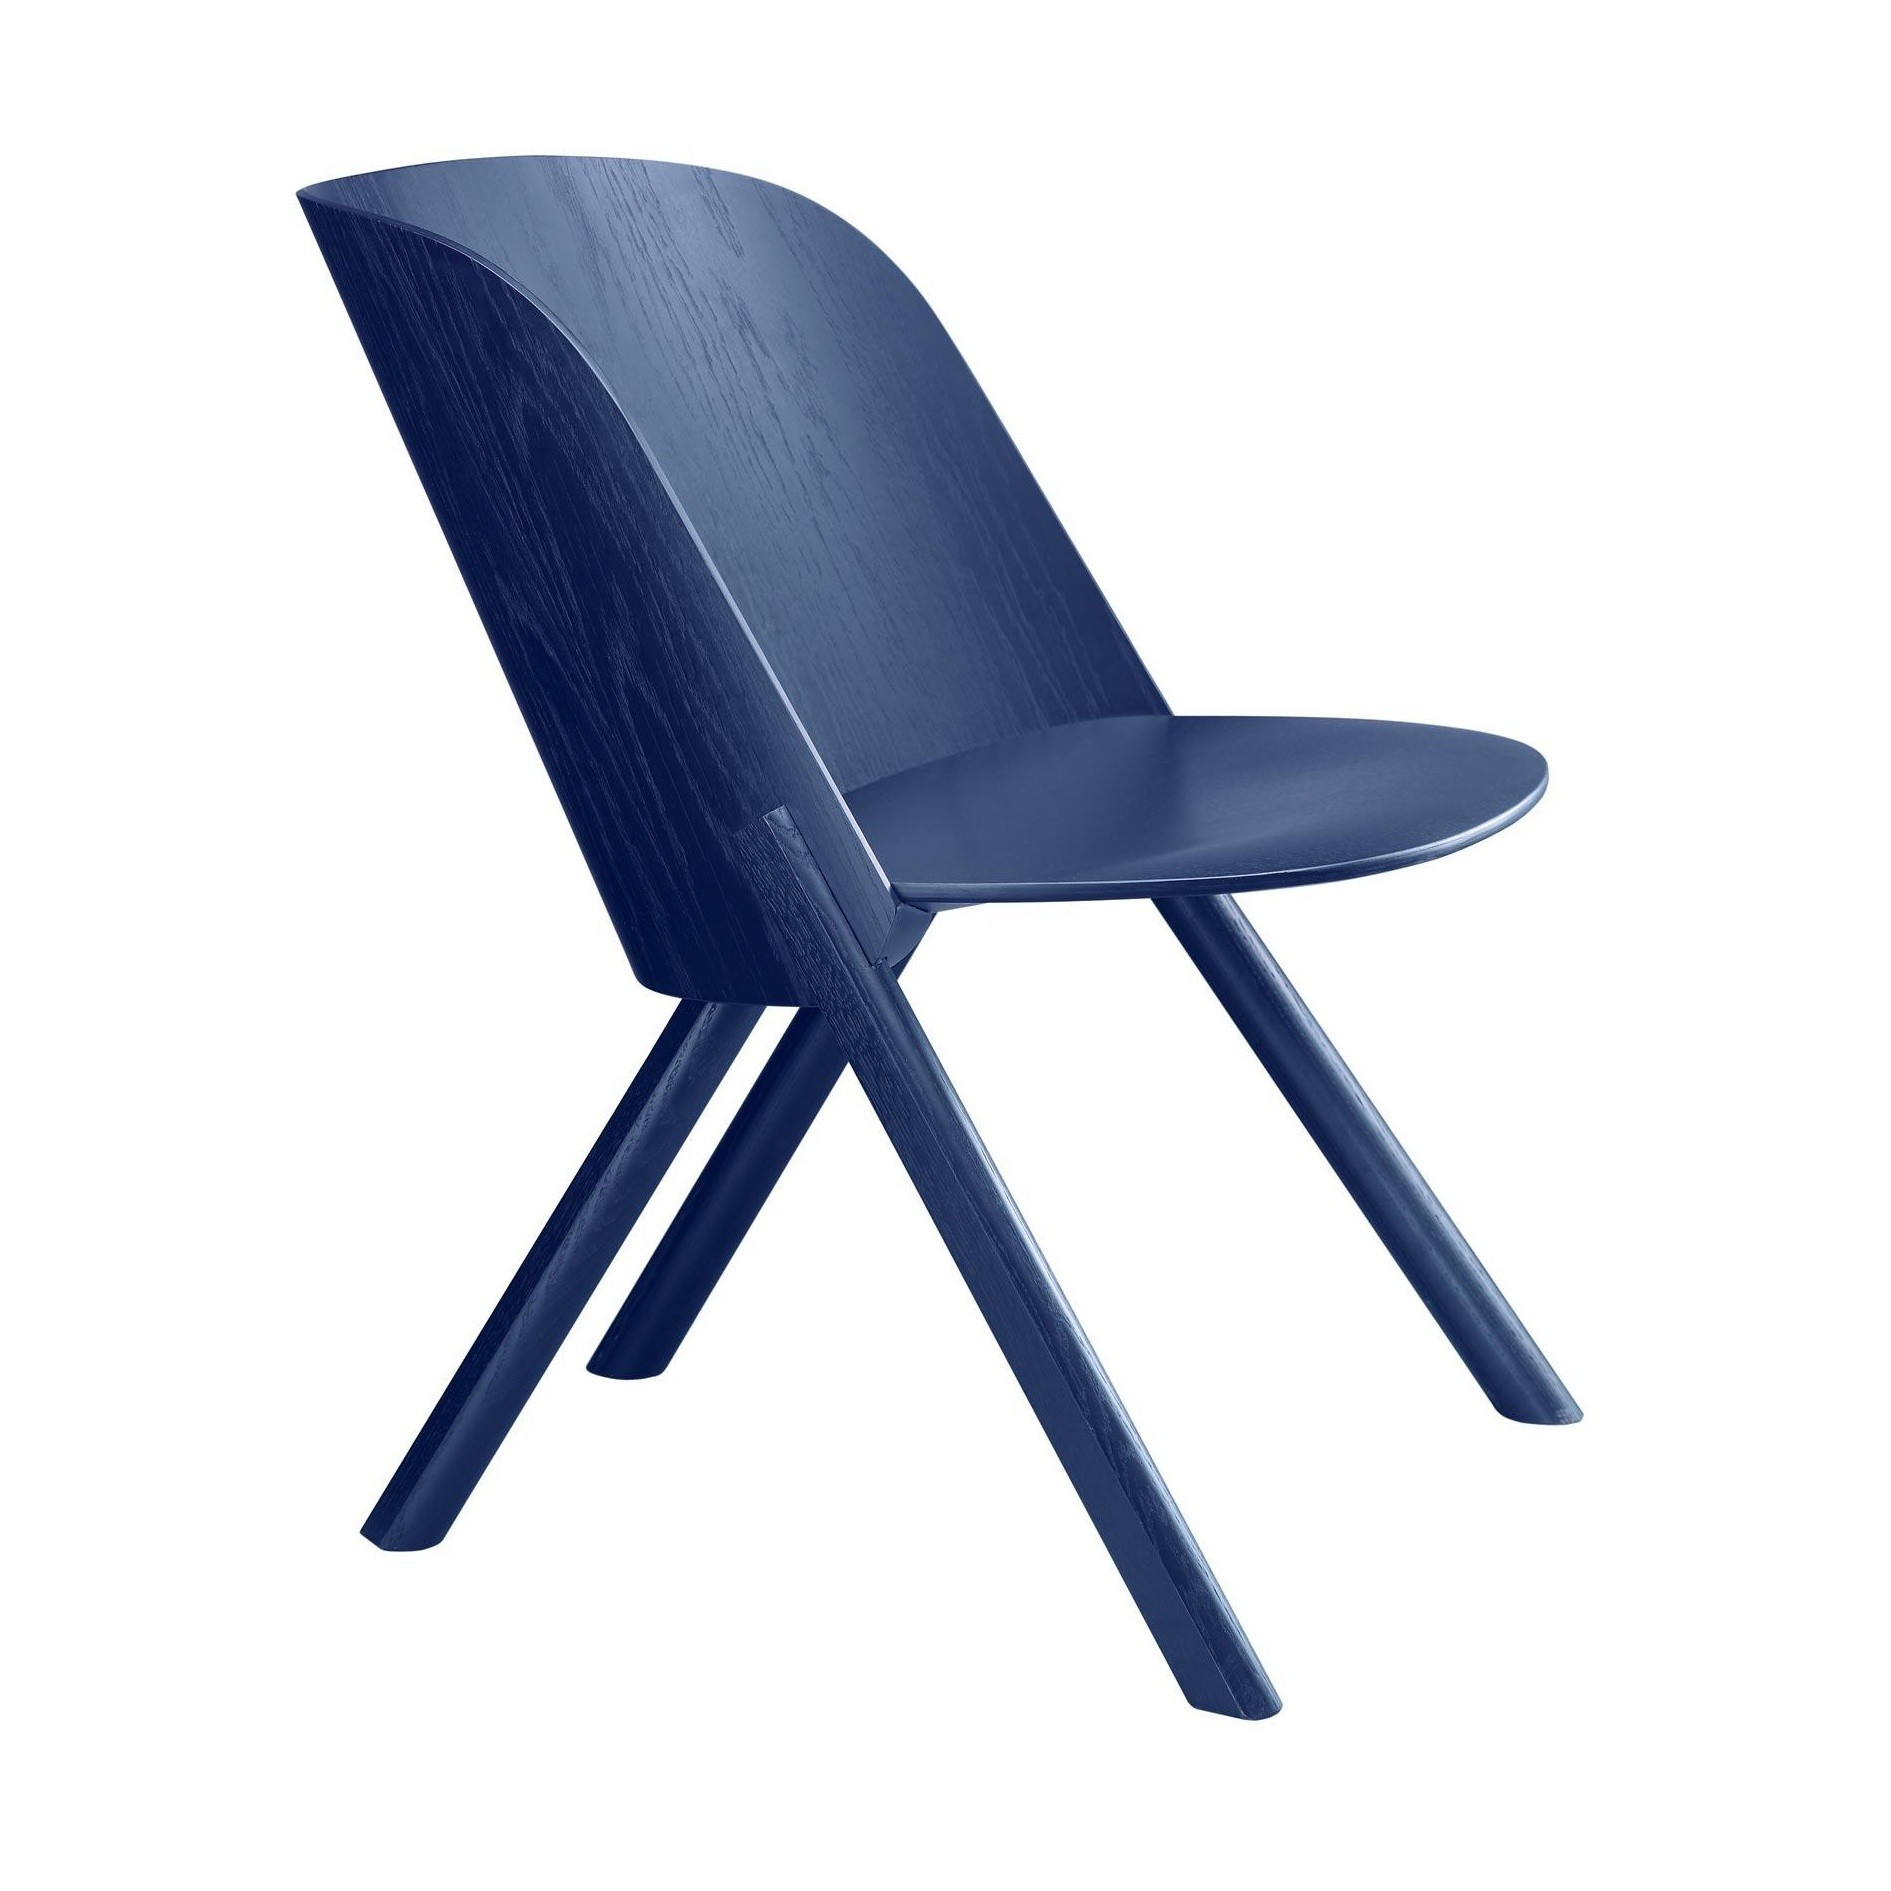 E15 Ec05 That Lounge Chair Ambientedirect Elaine Navy Top Leux Studio S Lacquered